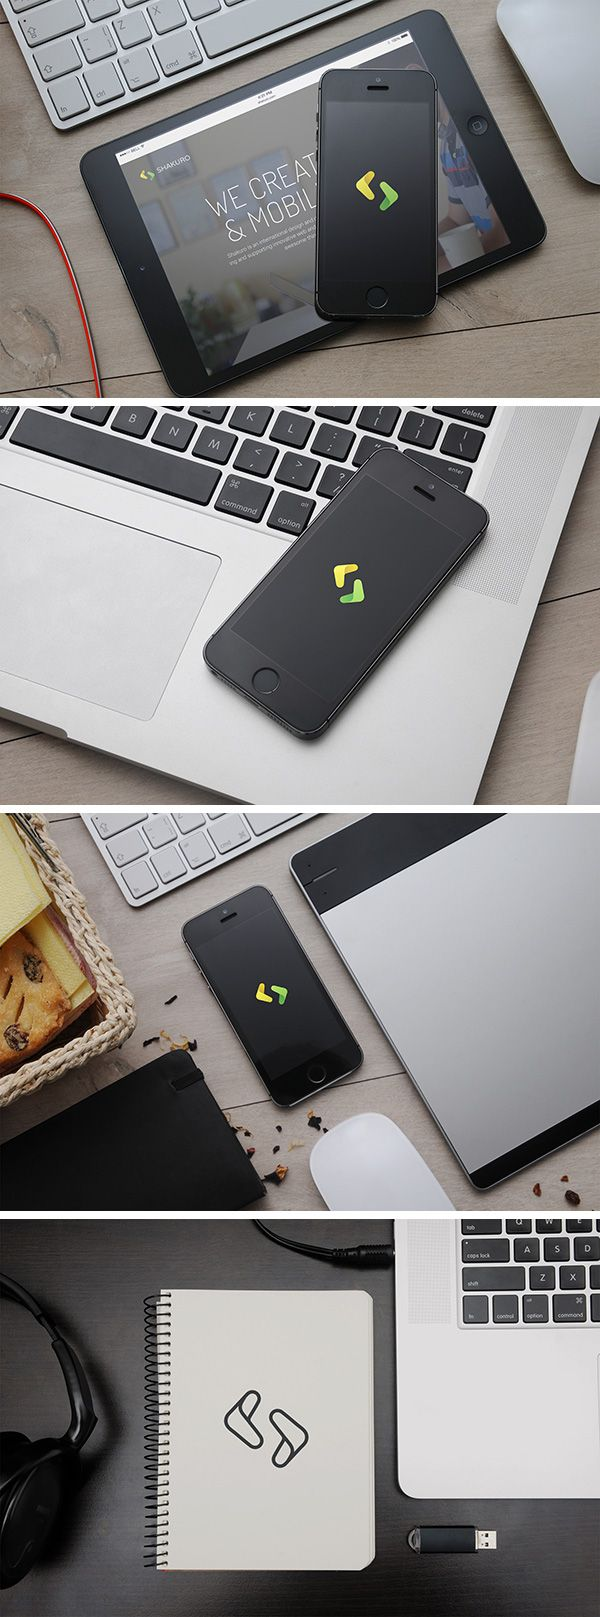 Here we have a collection of 4 Apple devices mock-ups that you can use freely to showcase and promote...